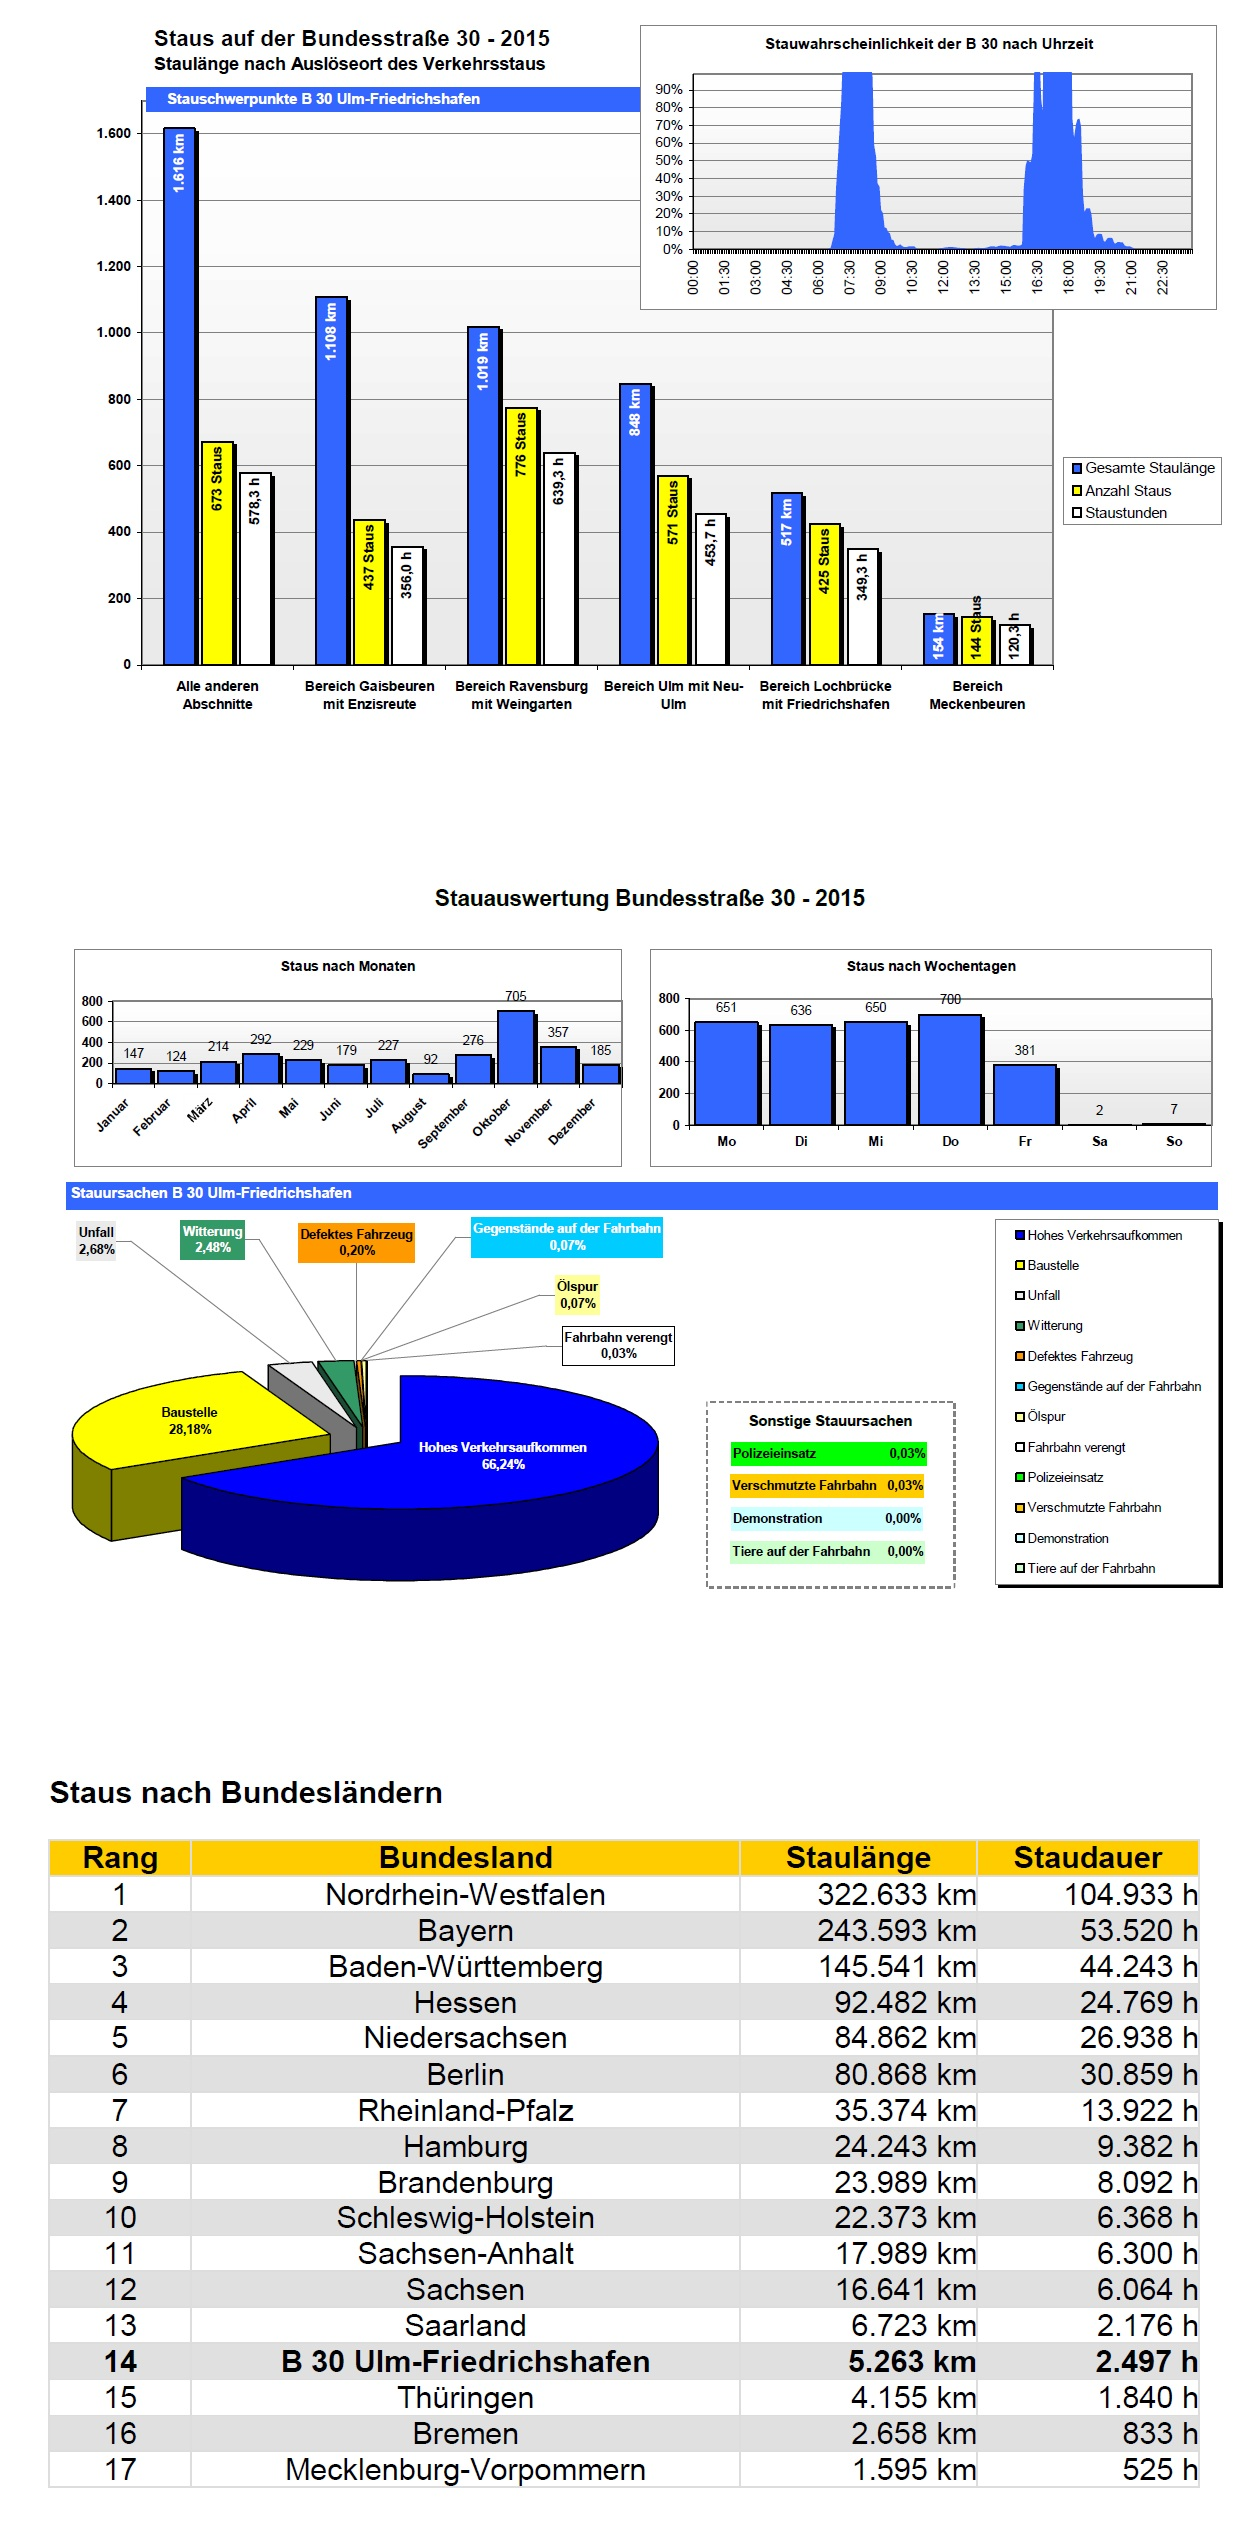 Grafik Stauauswertung